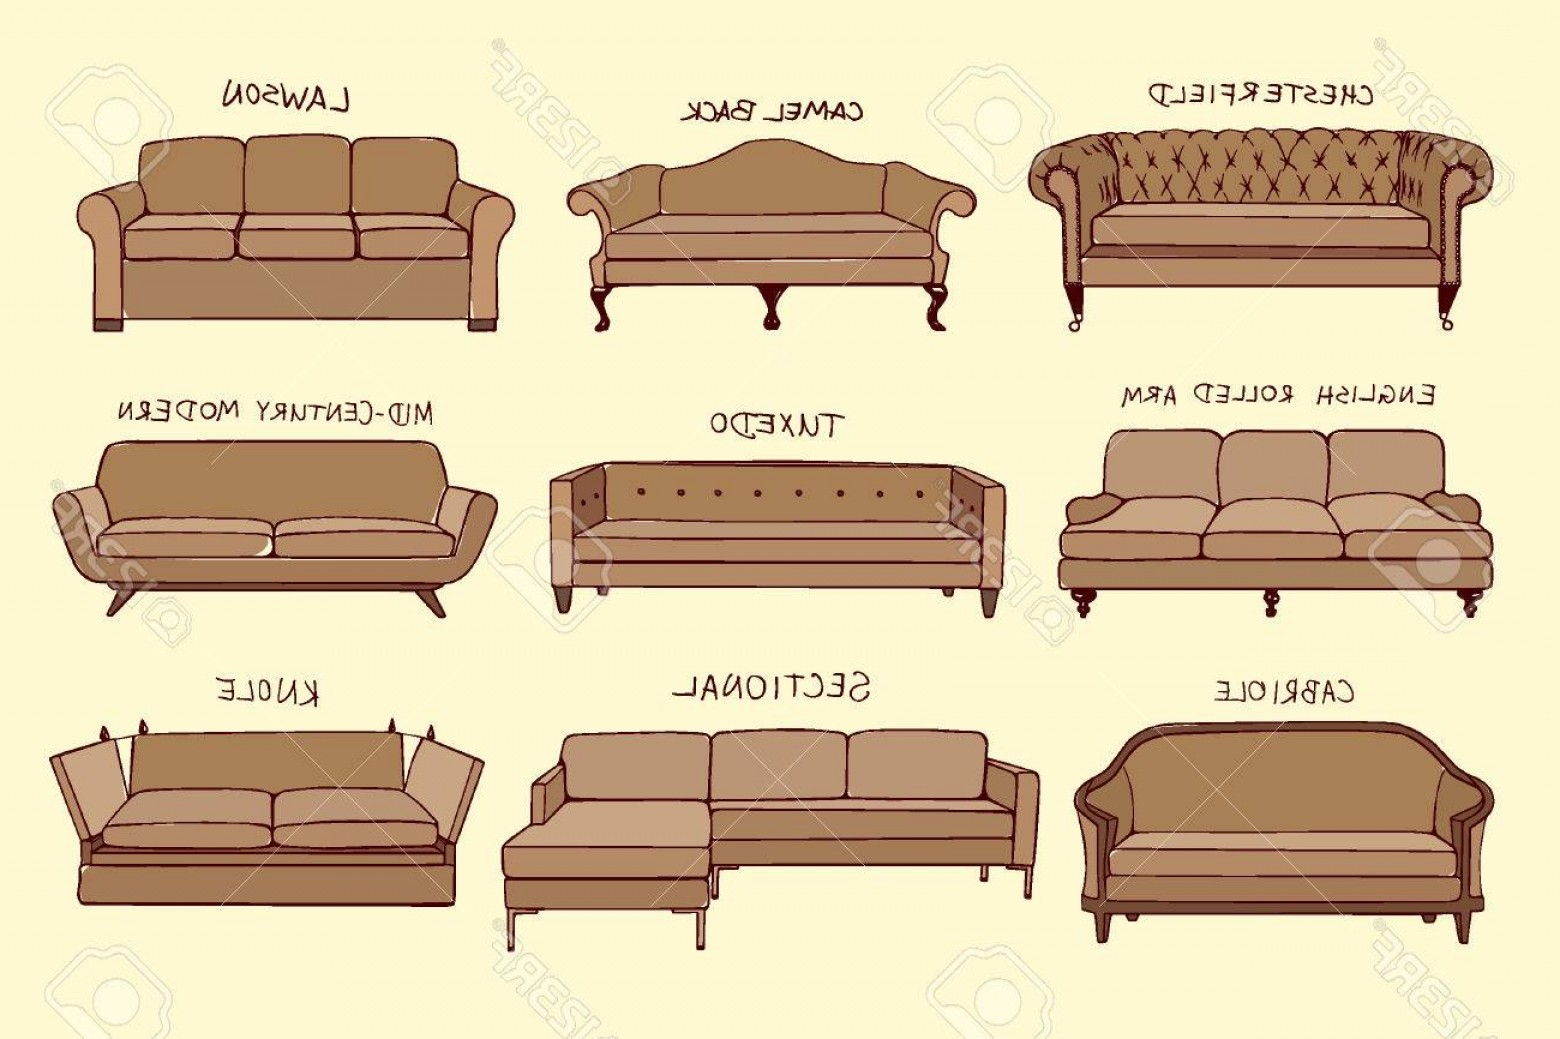 Back Of The Couch Vector: Photostock Vector Vector Visual Guide Of Sofa Design Styles Hand Drawn Sofa Set Made In Linear Style Beautiful Design